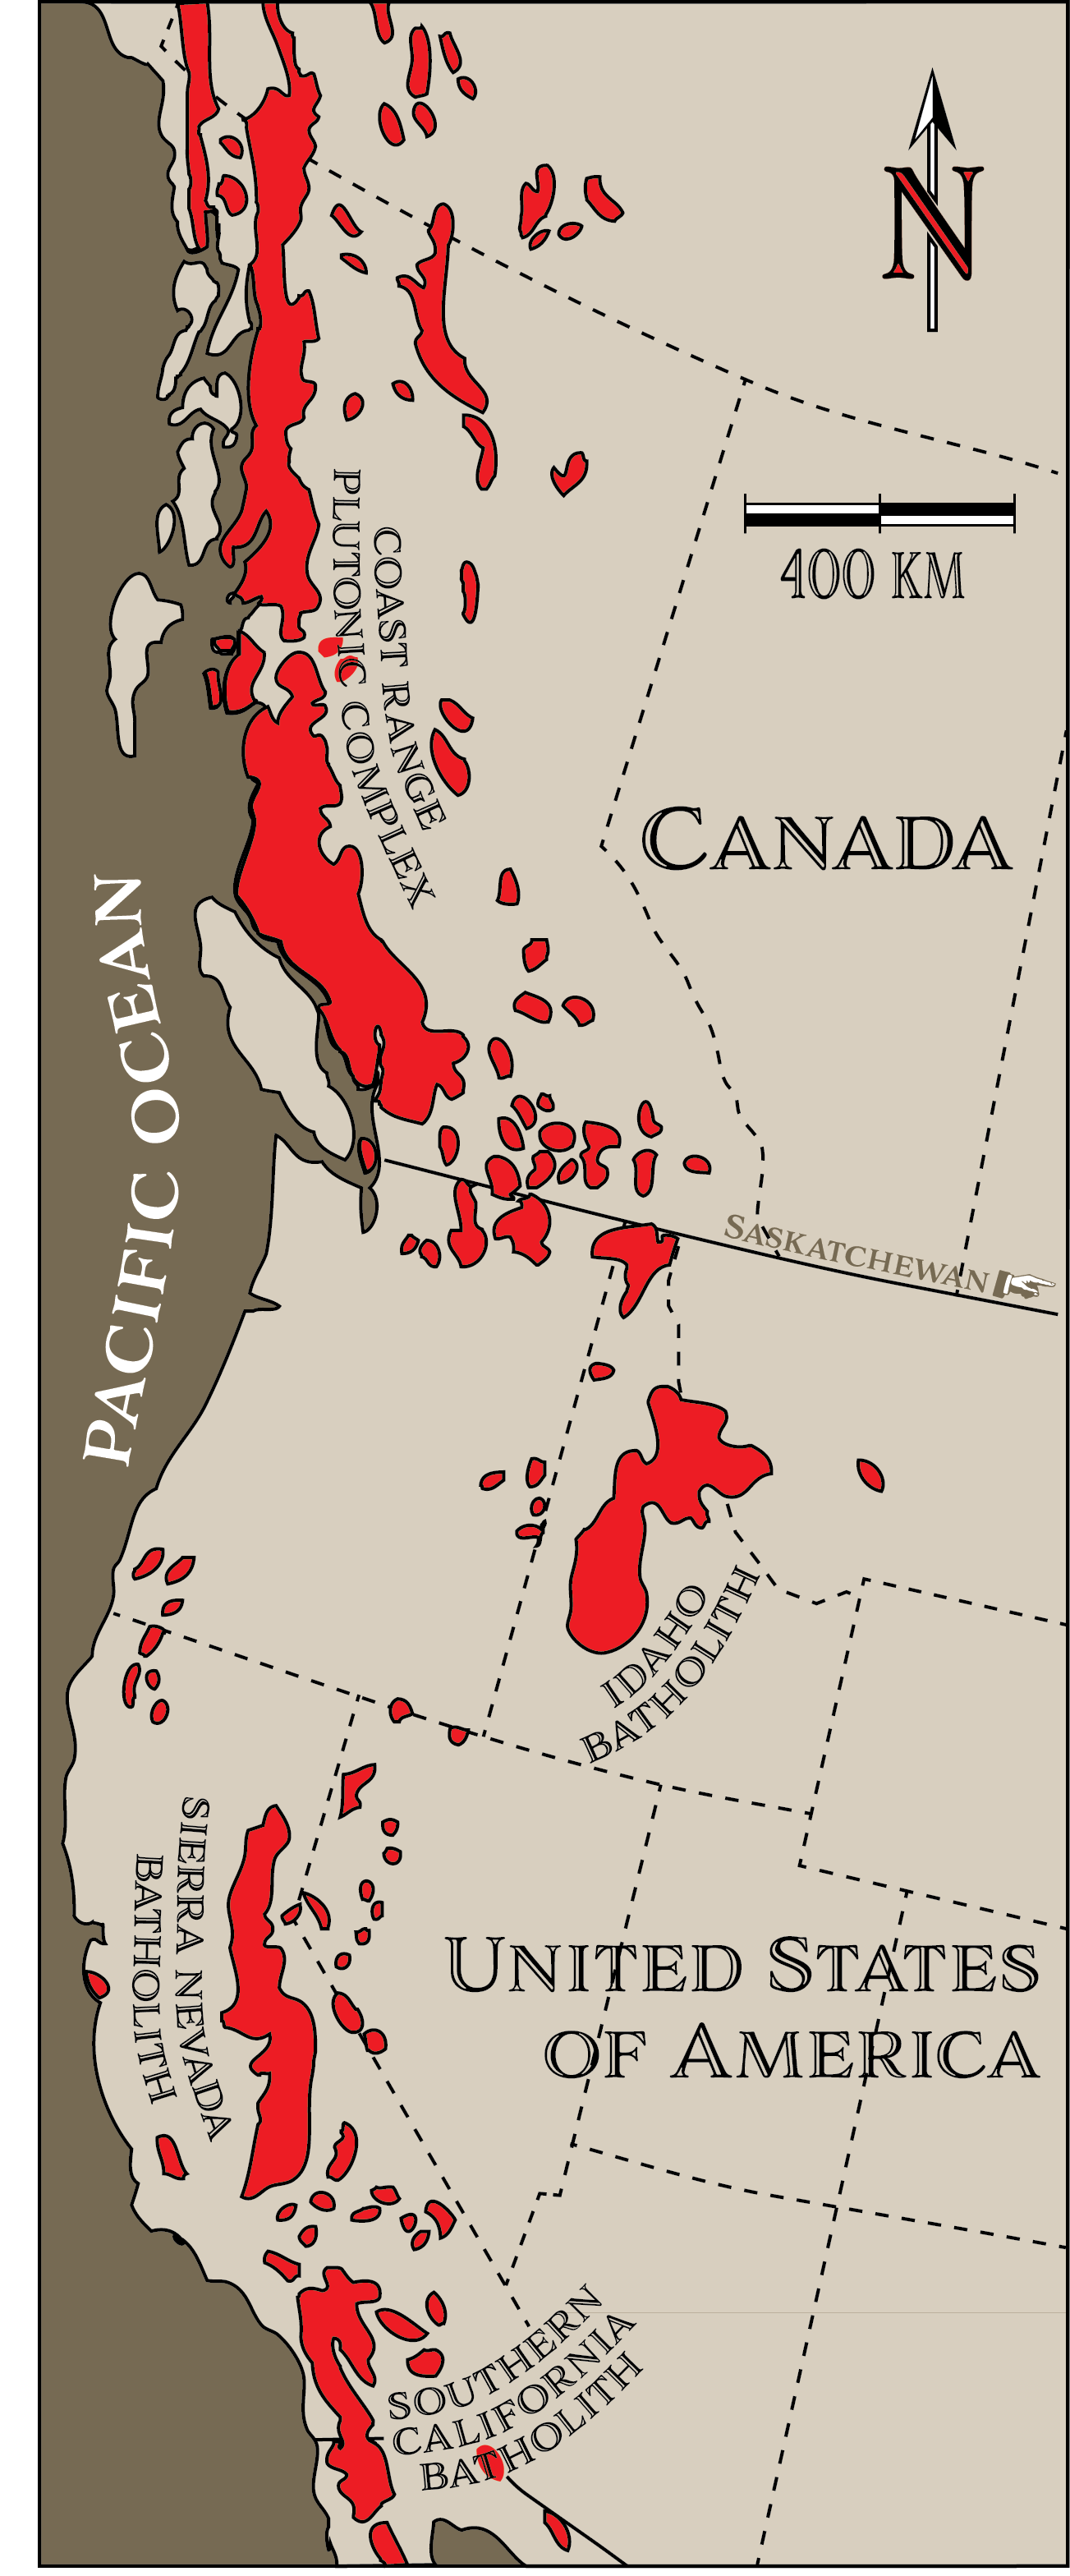 The Coast Range Plutonic Complex (also called the Coast Range Batholith) is the largest in the world. It is part of a chain of batholiths along the western coast of North America. [KP after K. Leonard http://bit.ly/NAbatholiths]